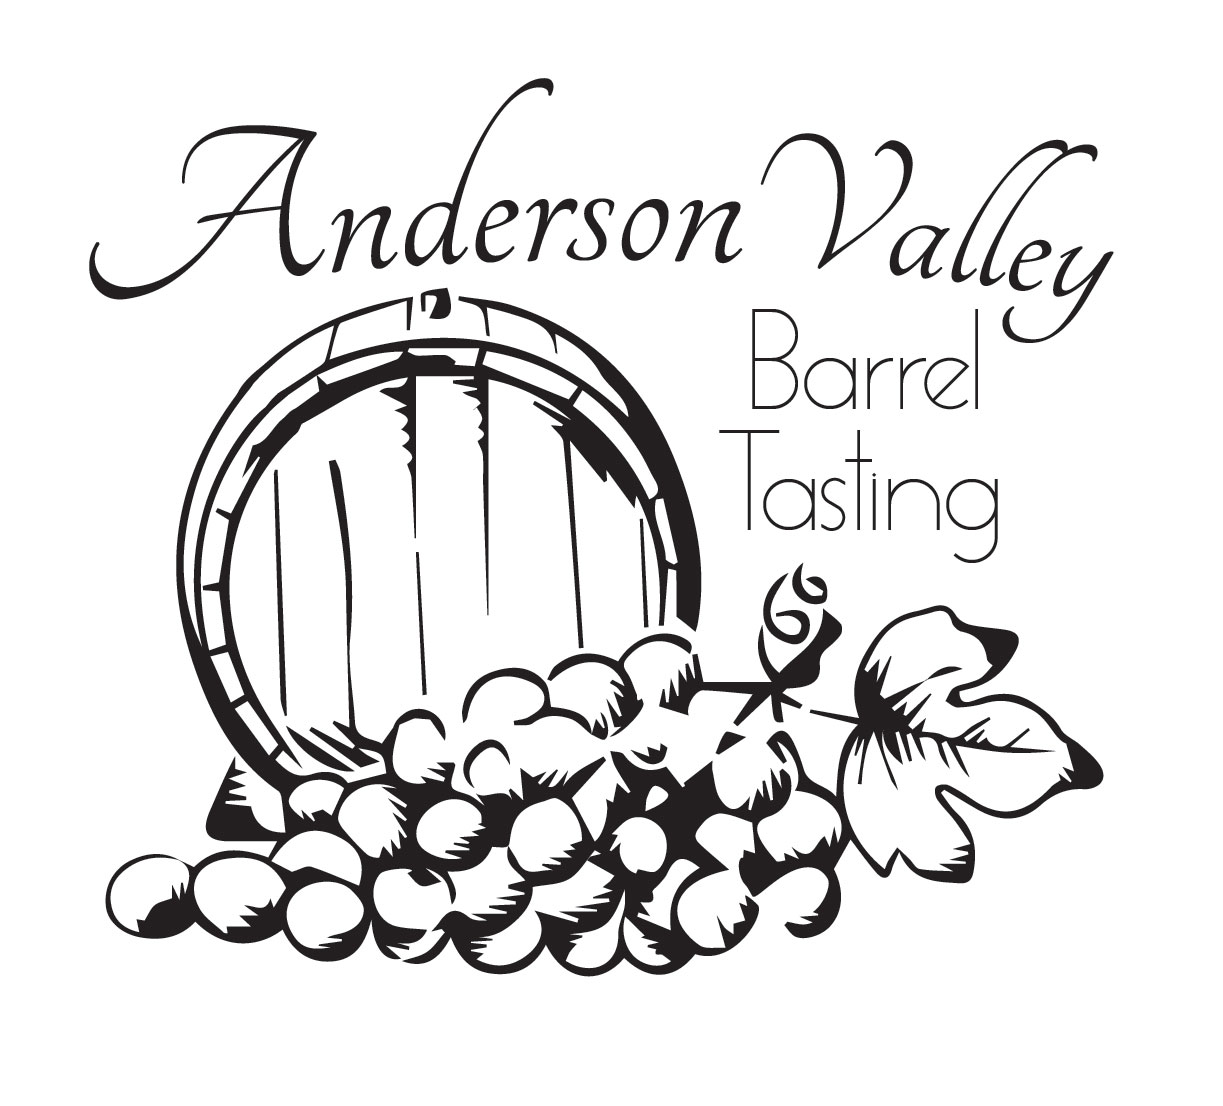 Foursight Wines Inc.: First-Ever Anderson Valley Barrel